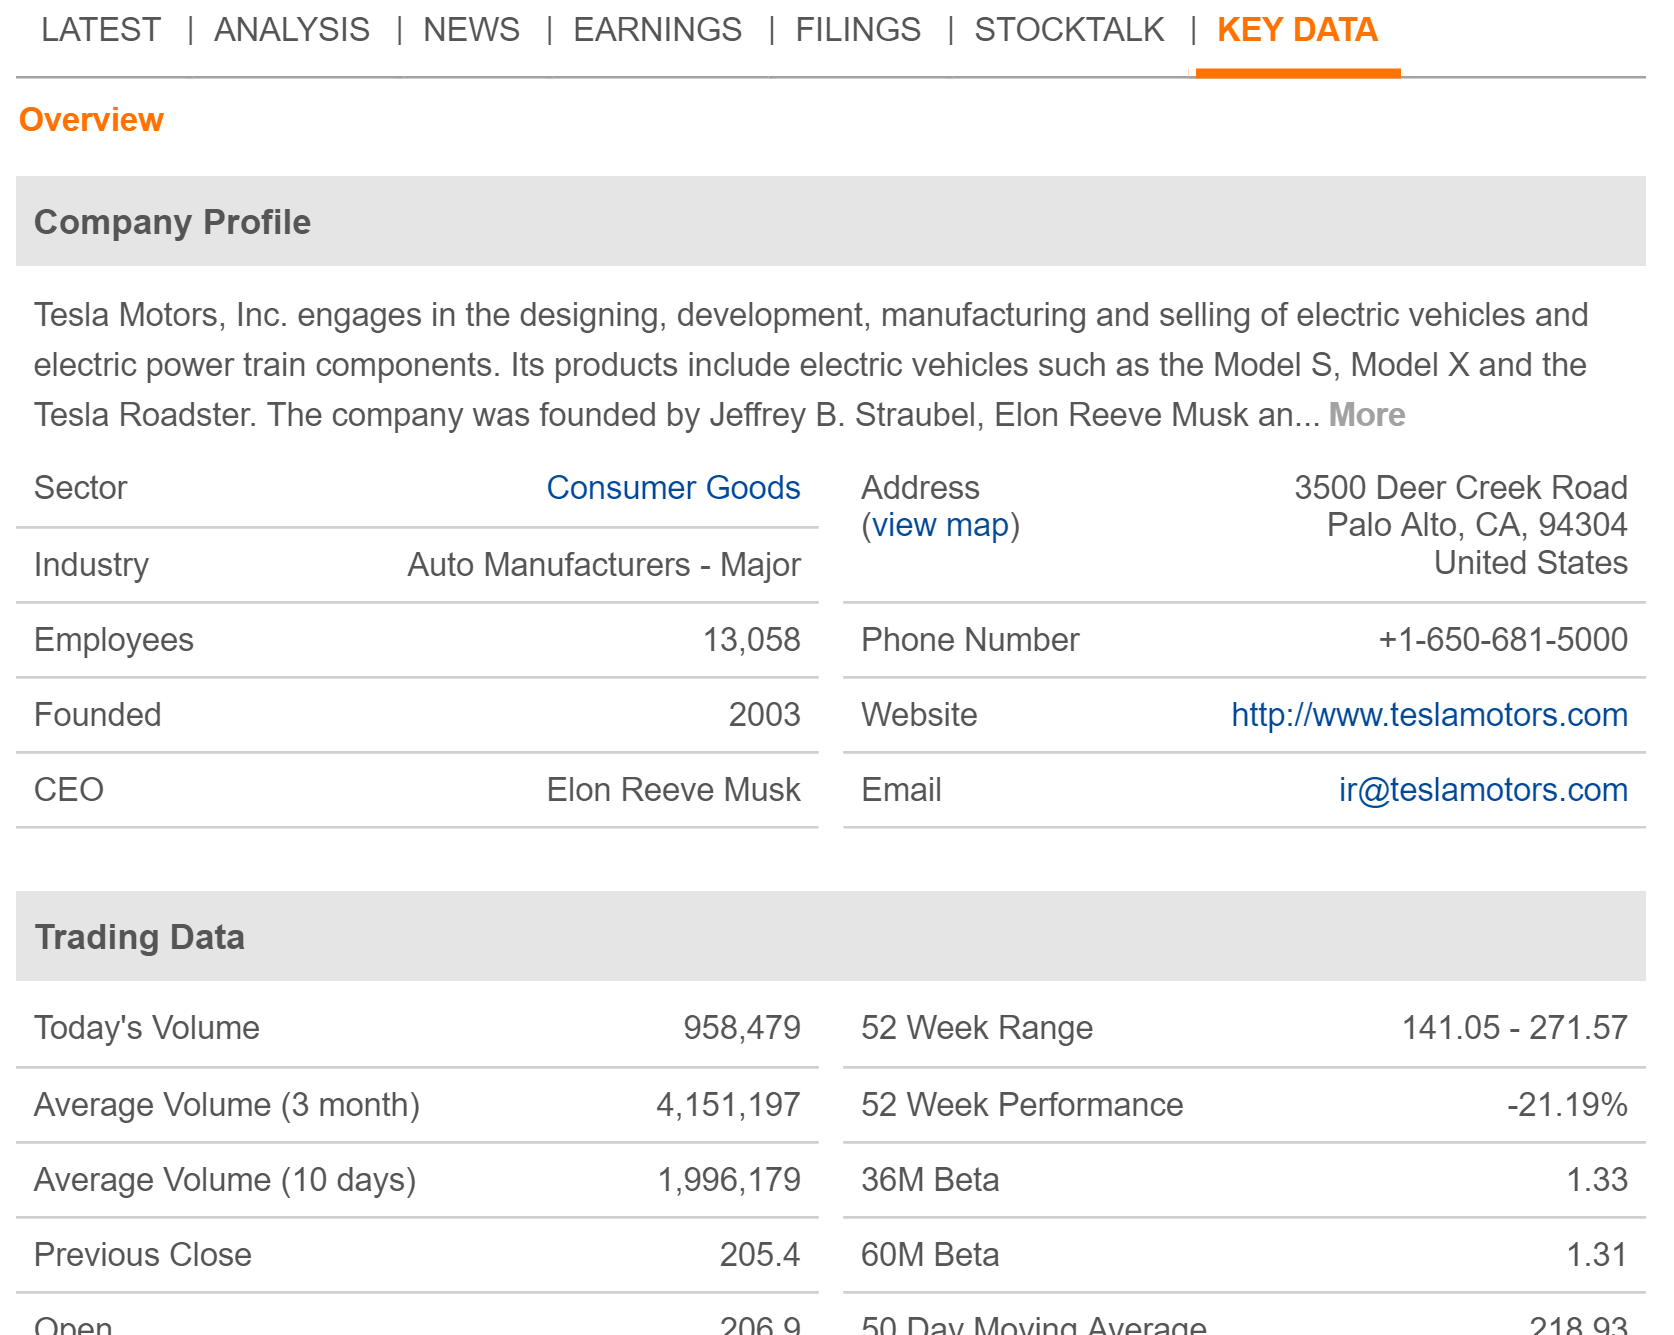 Announcing Major Enhancements To Seeking Alpha Quote Pages